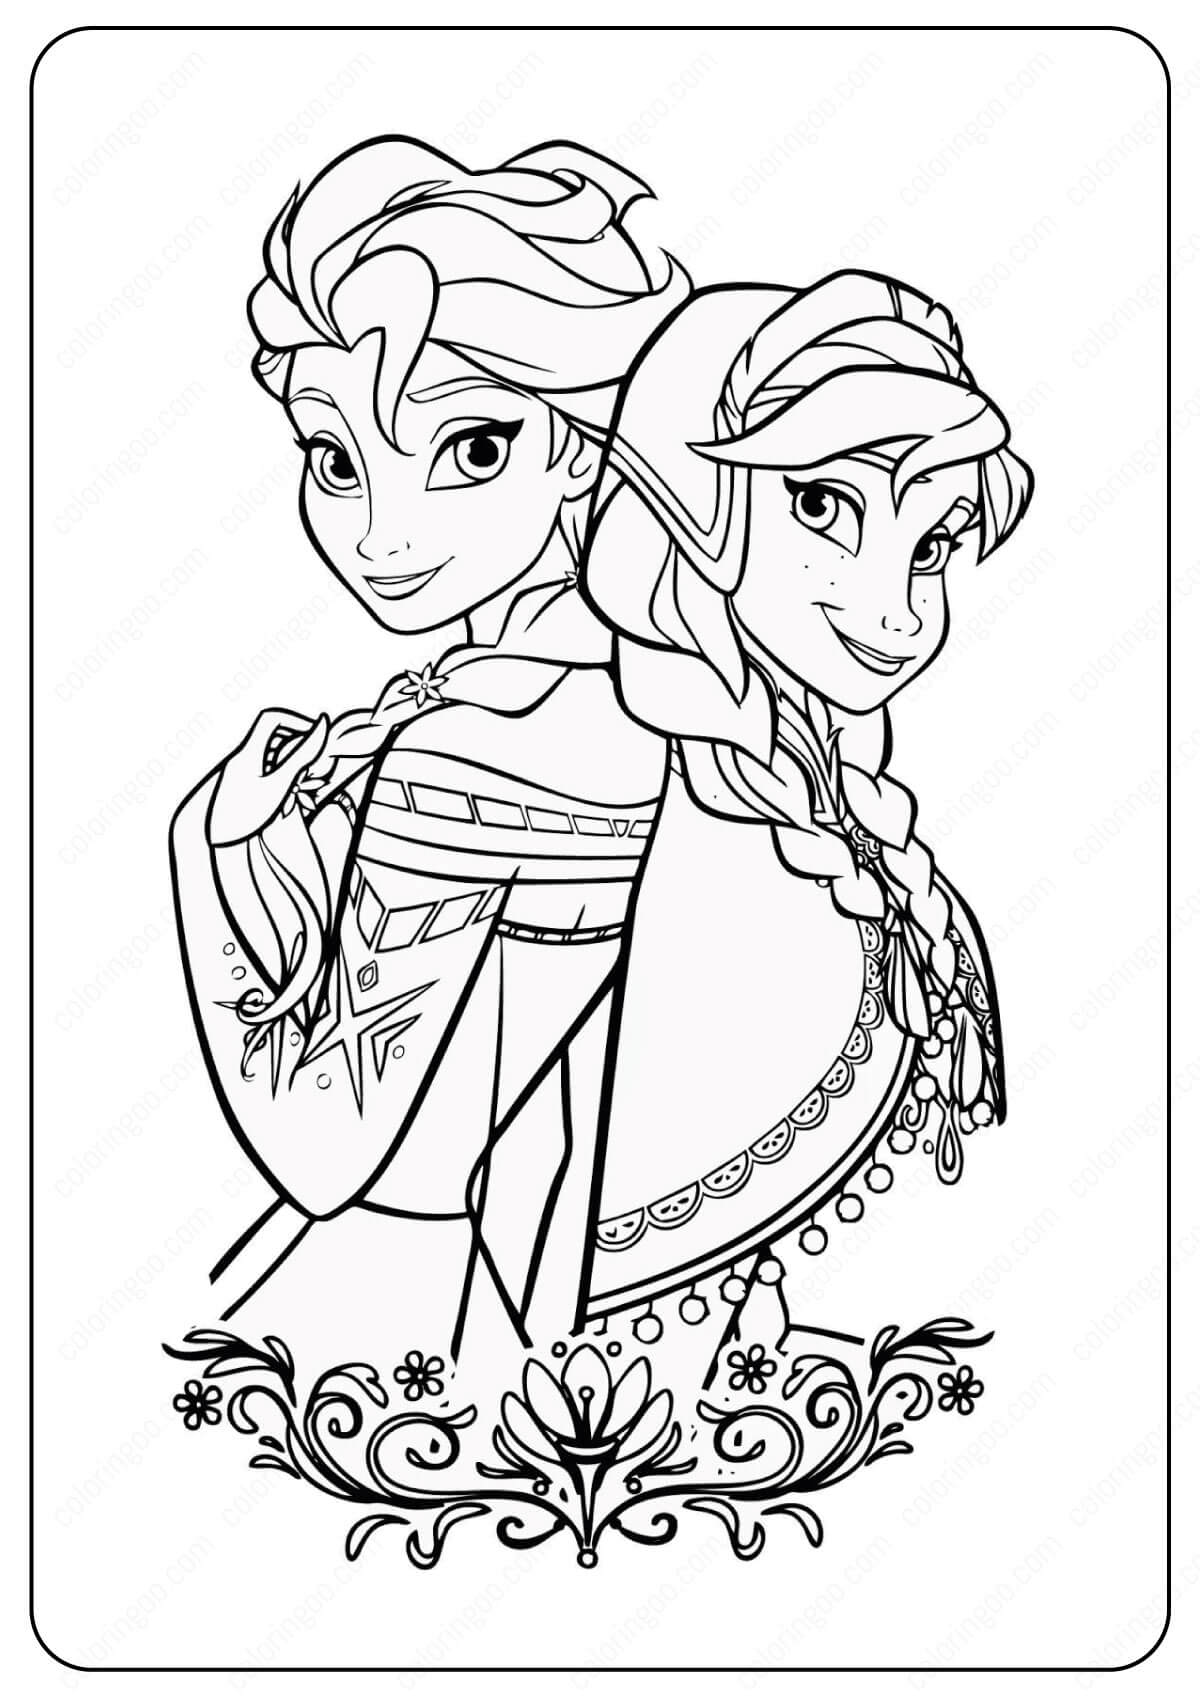 Free Printable Frozen Anna & Elsa Coloring Pages